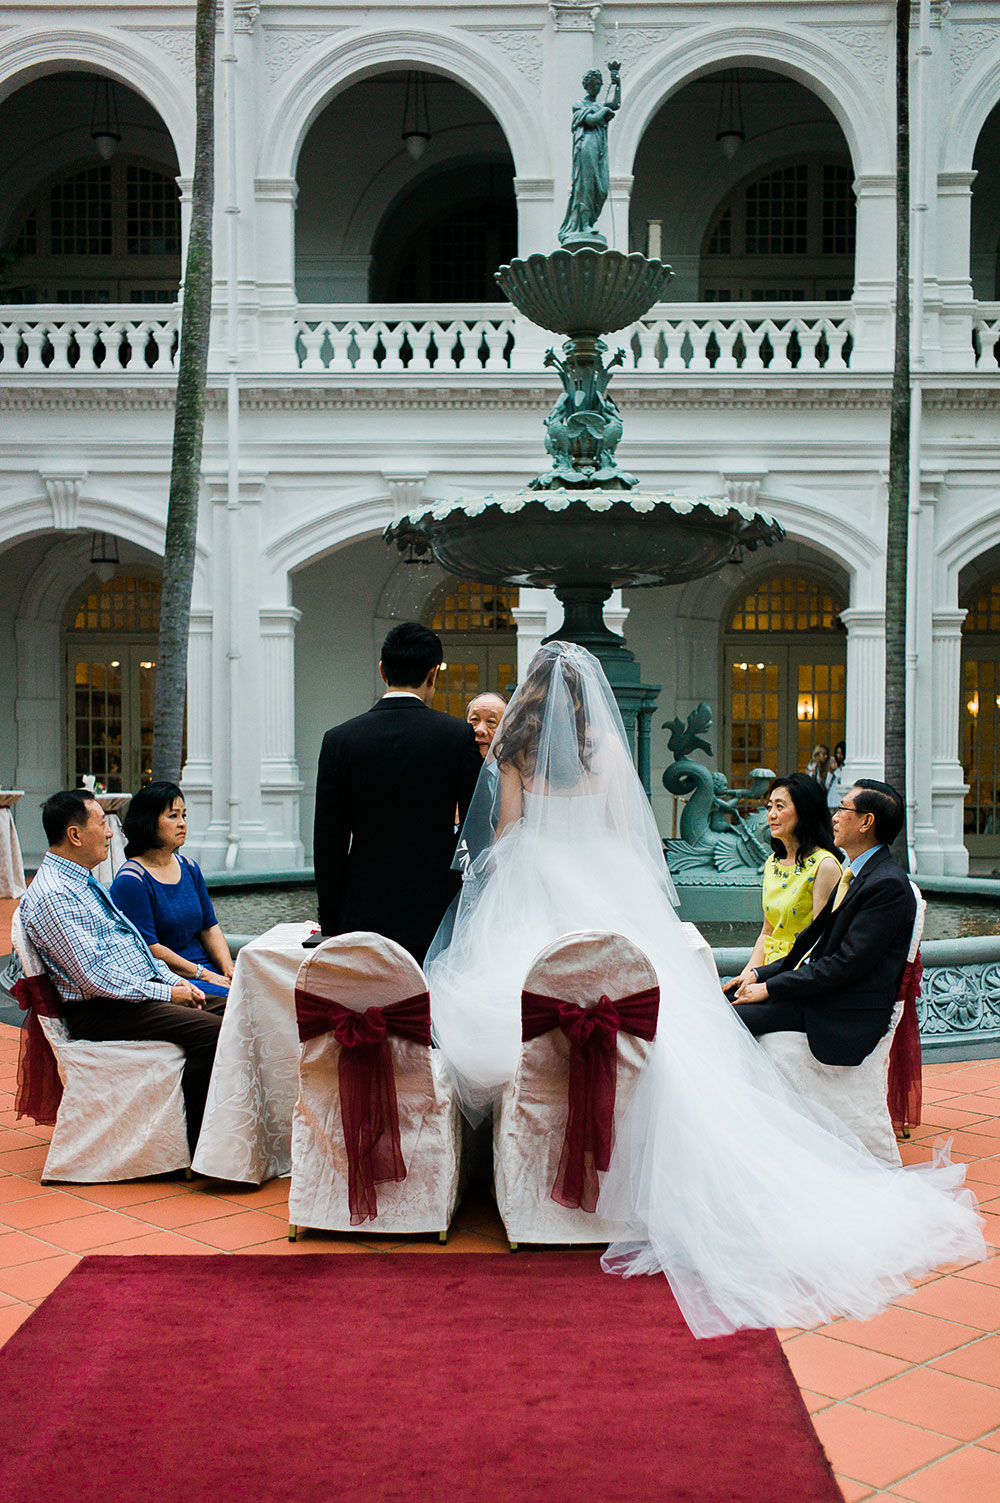 Singaore-Raffles-Hotel-Wedding-ceremony